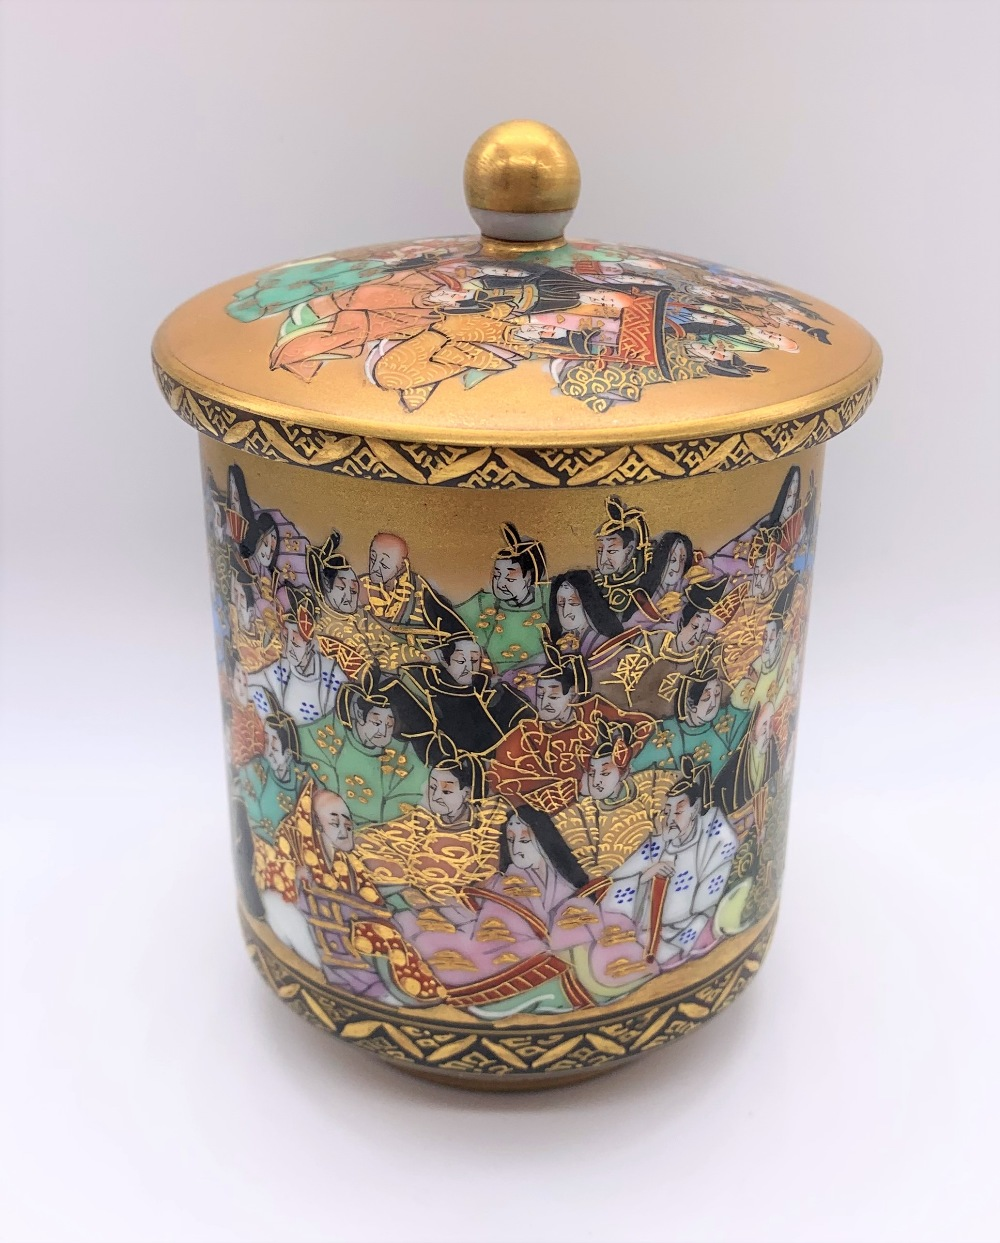 An unusual Japanese Meiji period Satsuma porcelain pot and cover painted with a band of figures, - Image 2 of 10